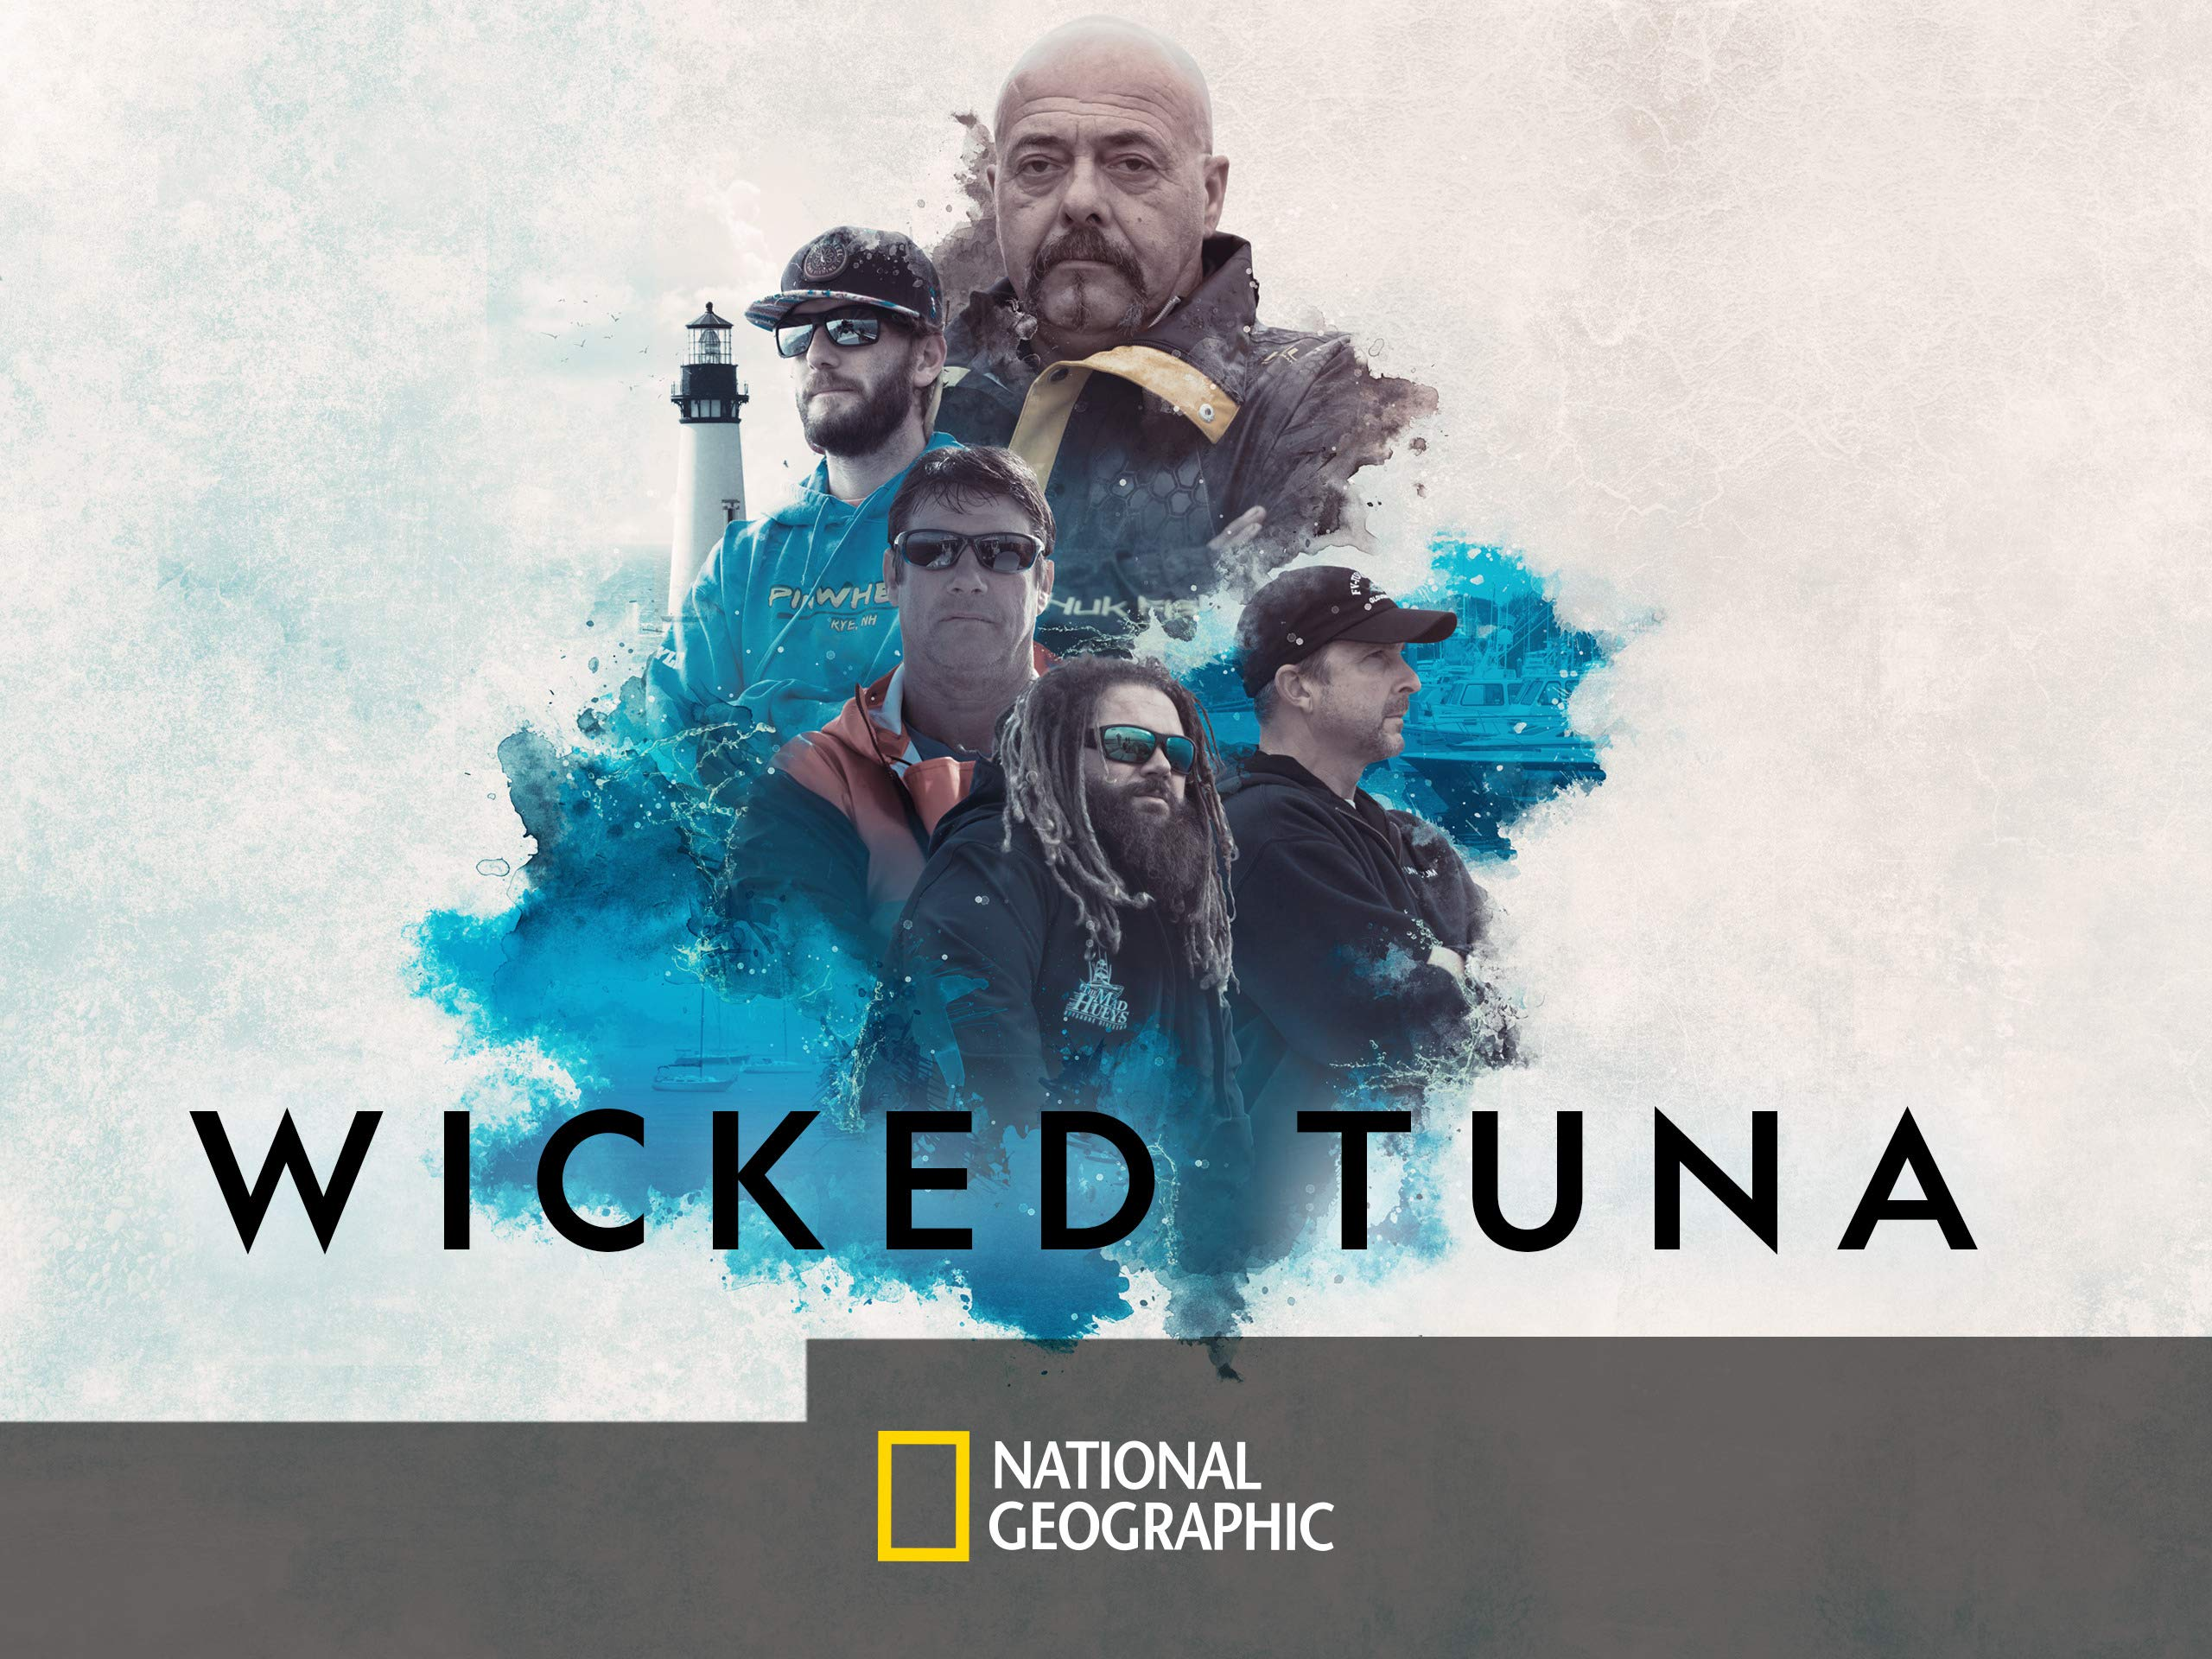 who won wicked tuna 2020